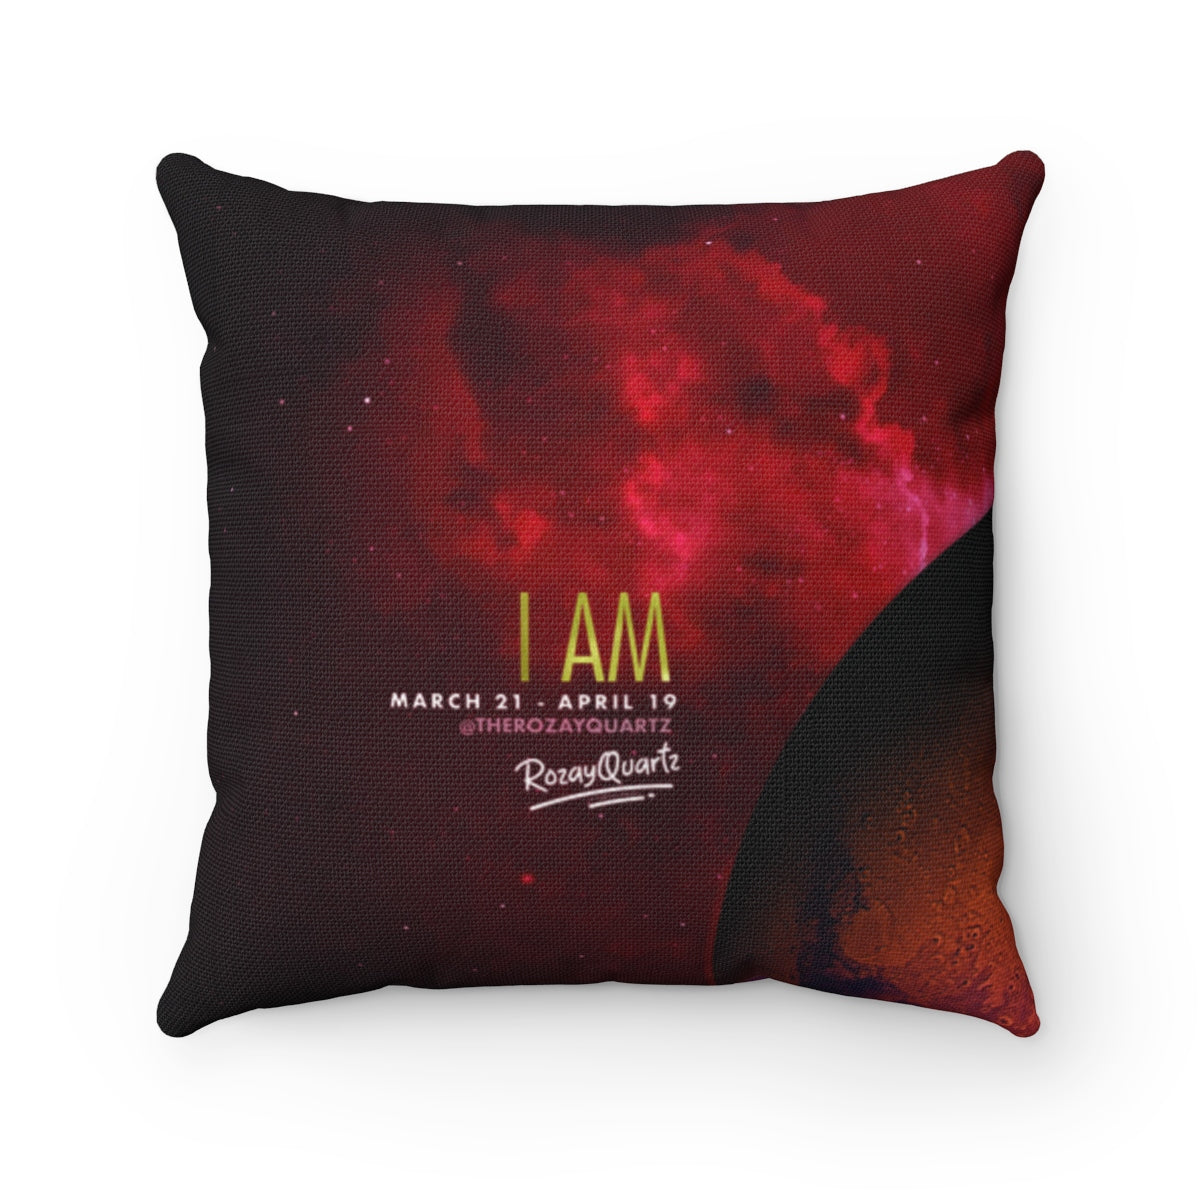 Aries Pillow - #ChildishZodiac